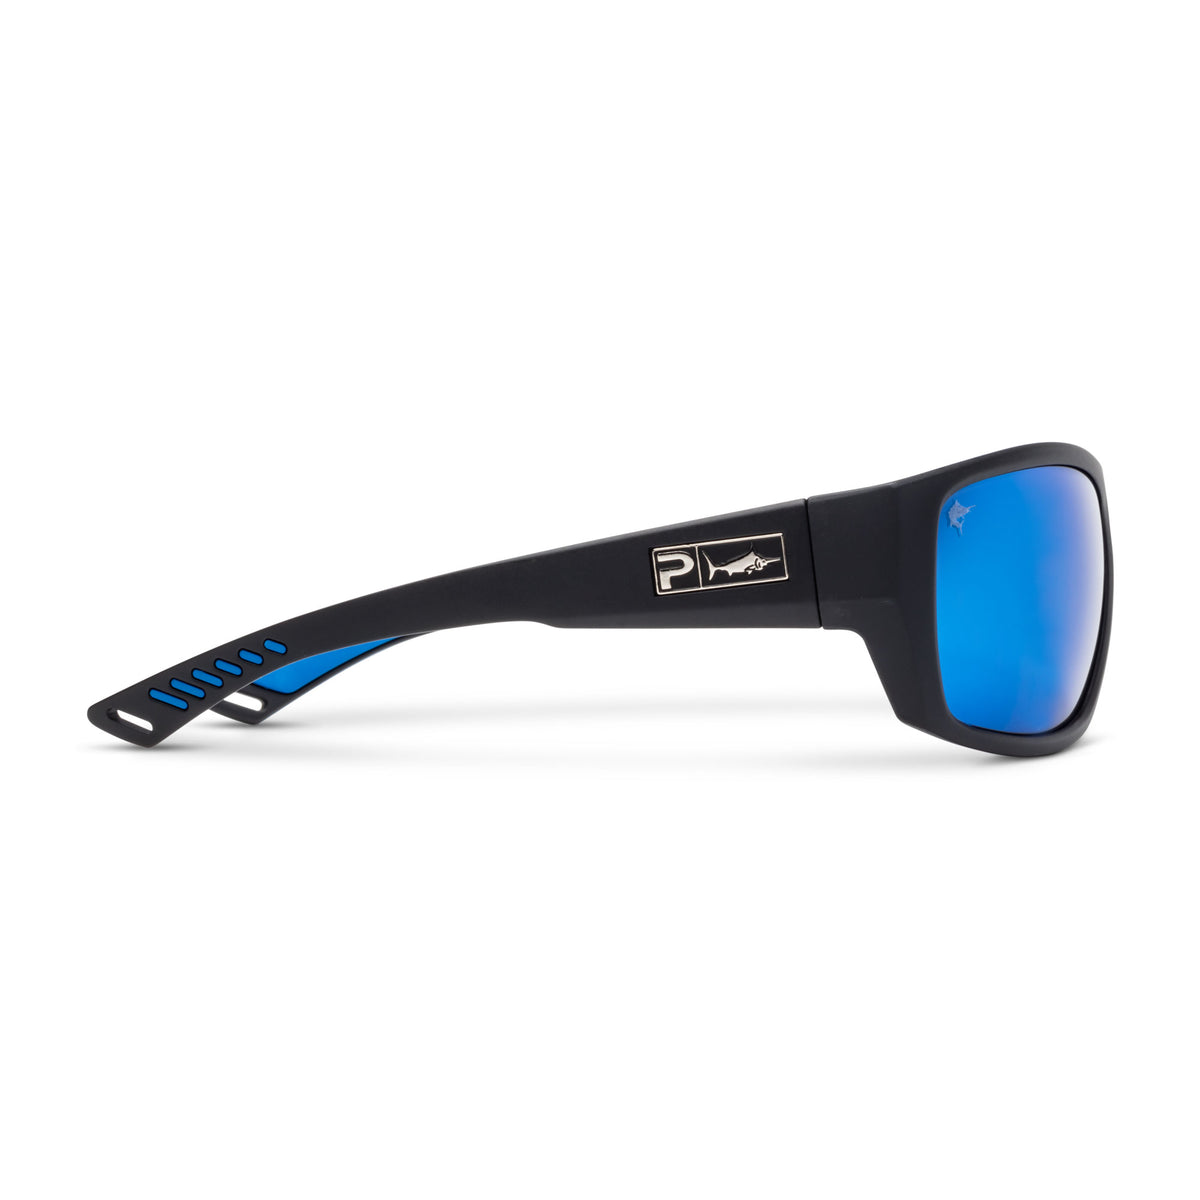 Pursuit - Polarized Mineral Glass™ Big Image - 3